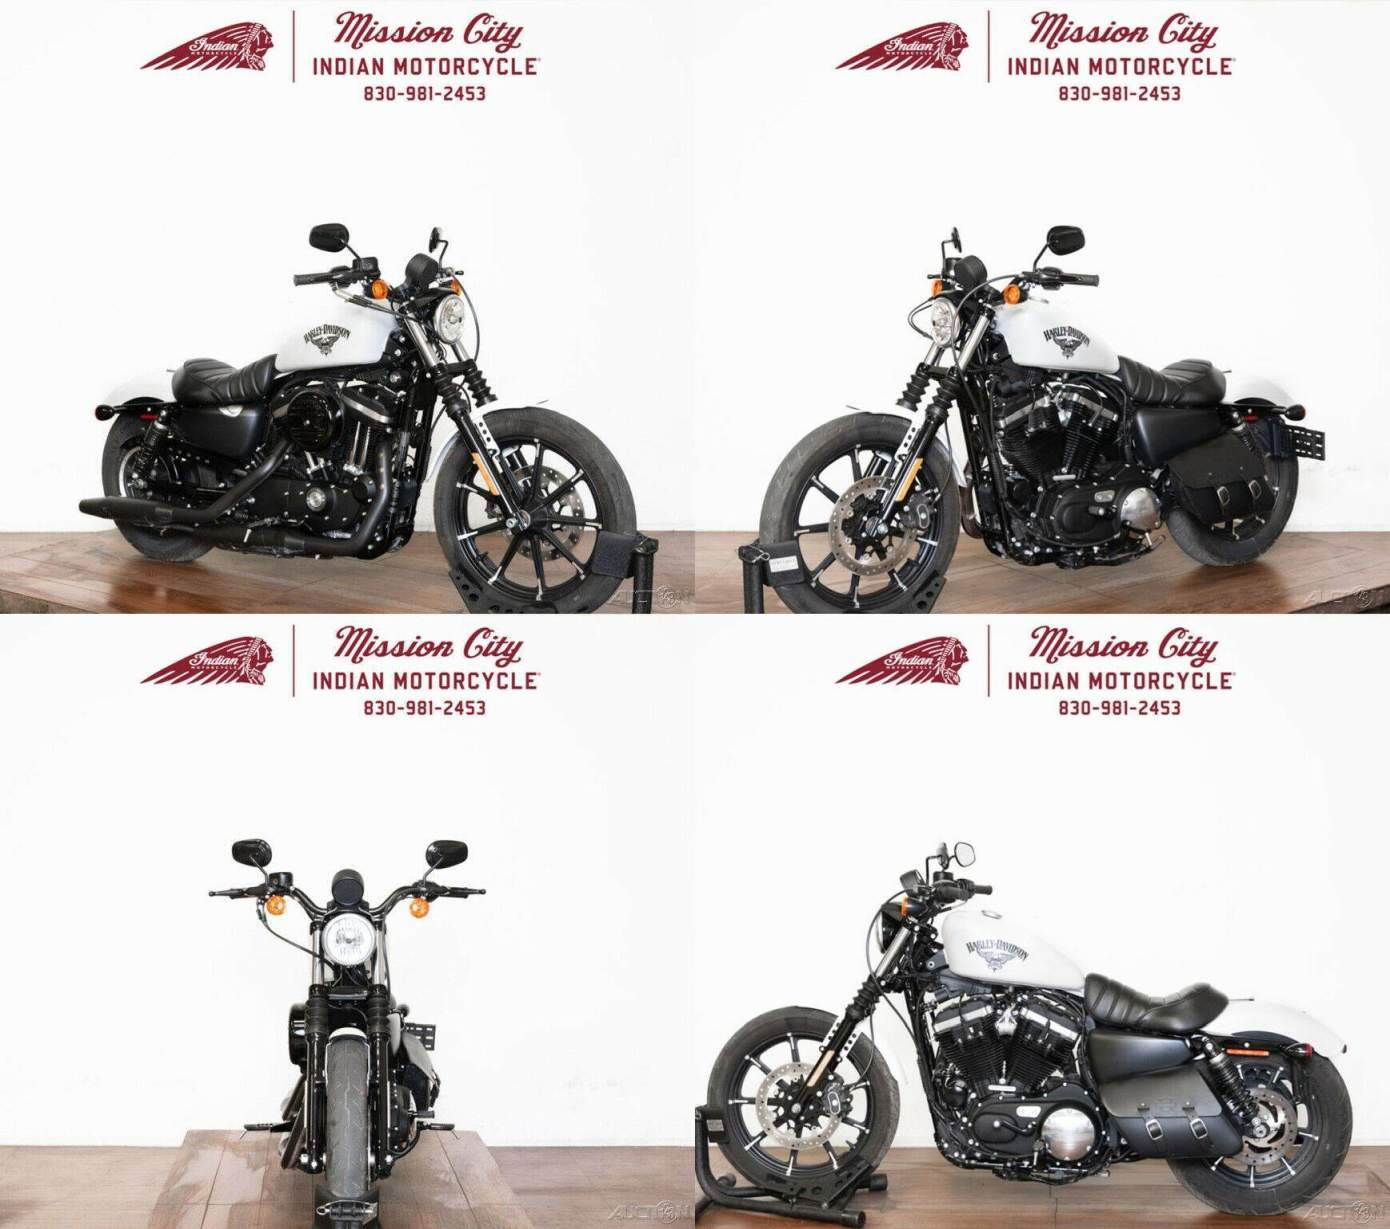 2018 Harley-Davidson Sportster XL883N - Iron 883 Bonneville Salt Denim used for sale craigslist